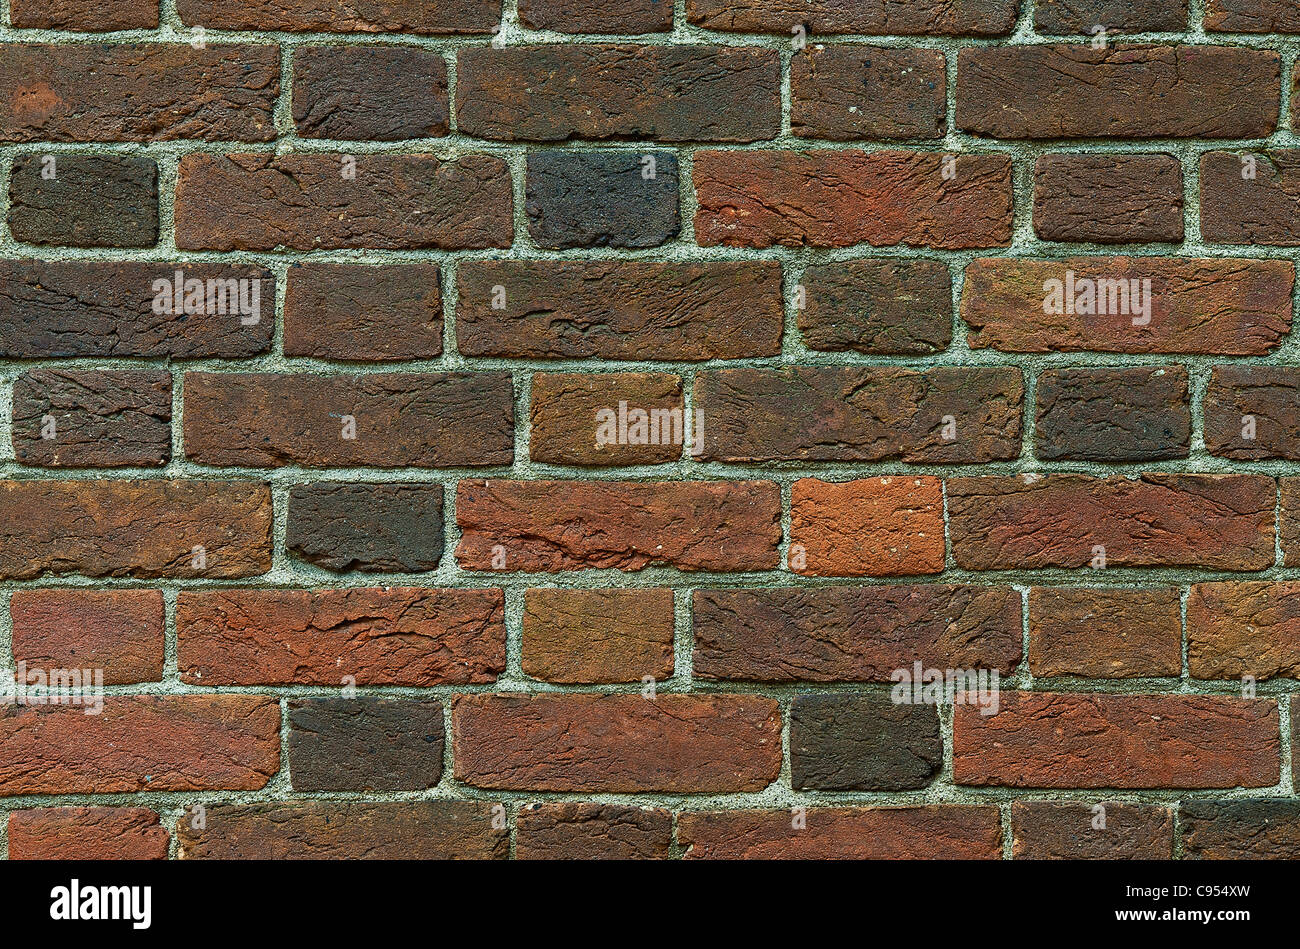 Antique brick wall. - Stock Image